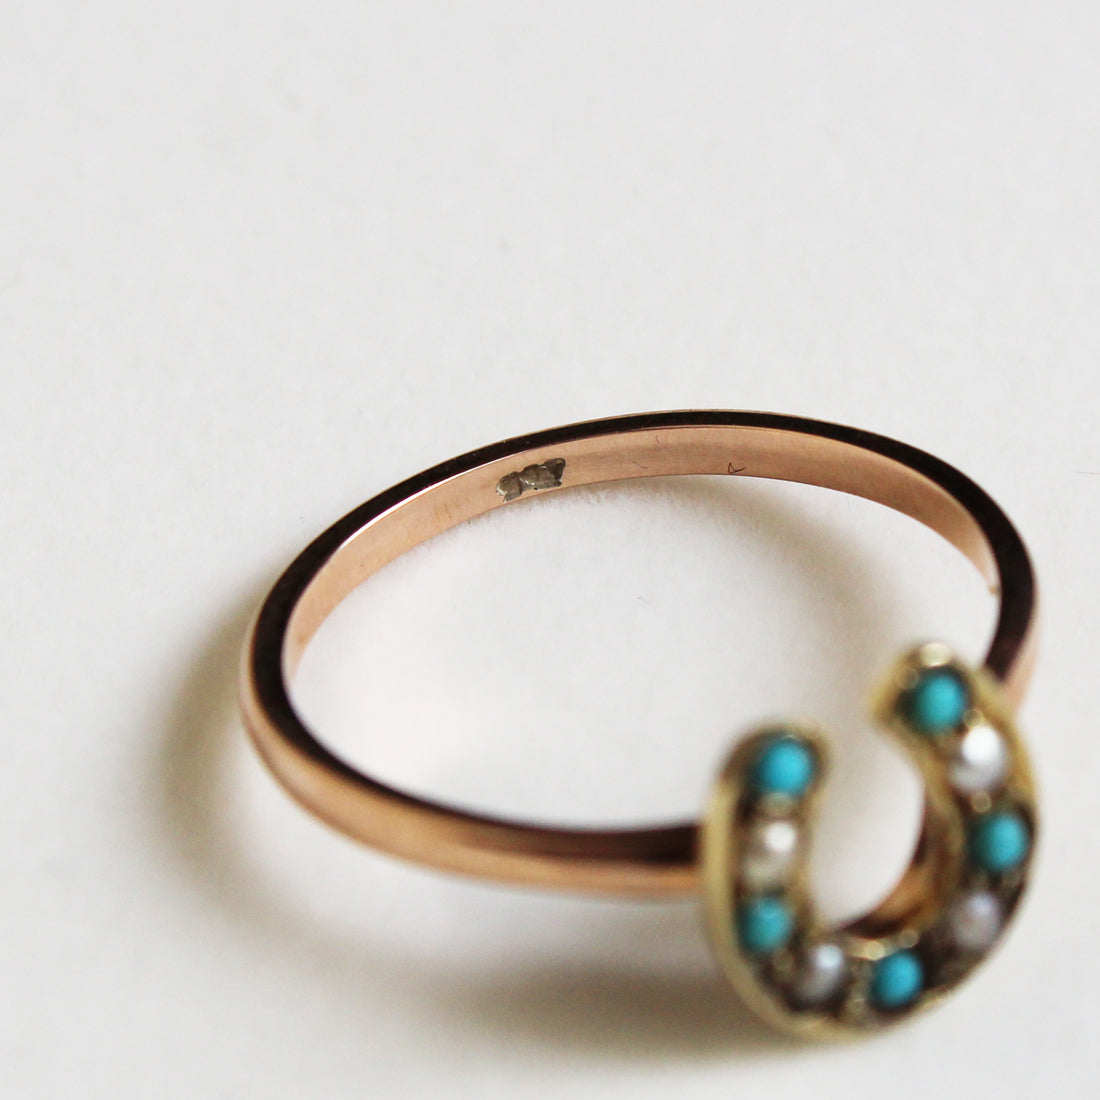 Antique Victorian Turquoise & Seed Pearl Horseshoe Ring (K9)